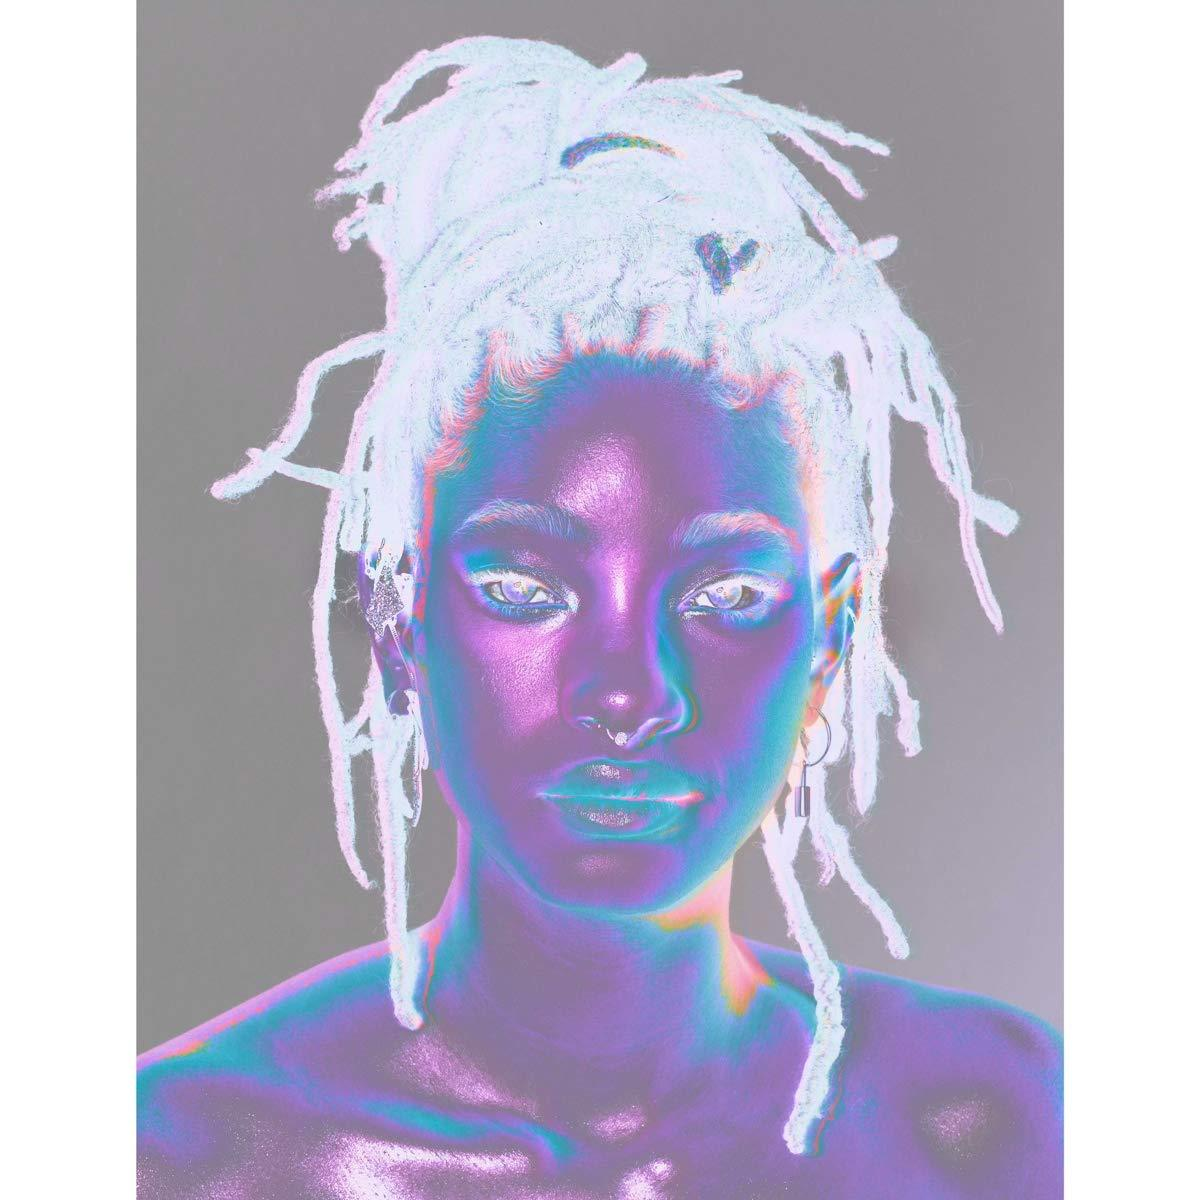 Willow (Smith) - WILLOW [LP] (Purple Vinyl, limited) - Urban Vinyl | Records, Headphones, and more.